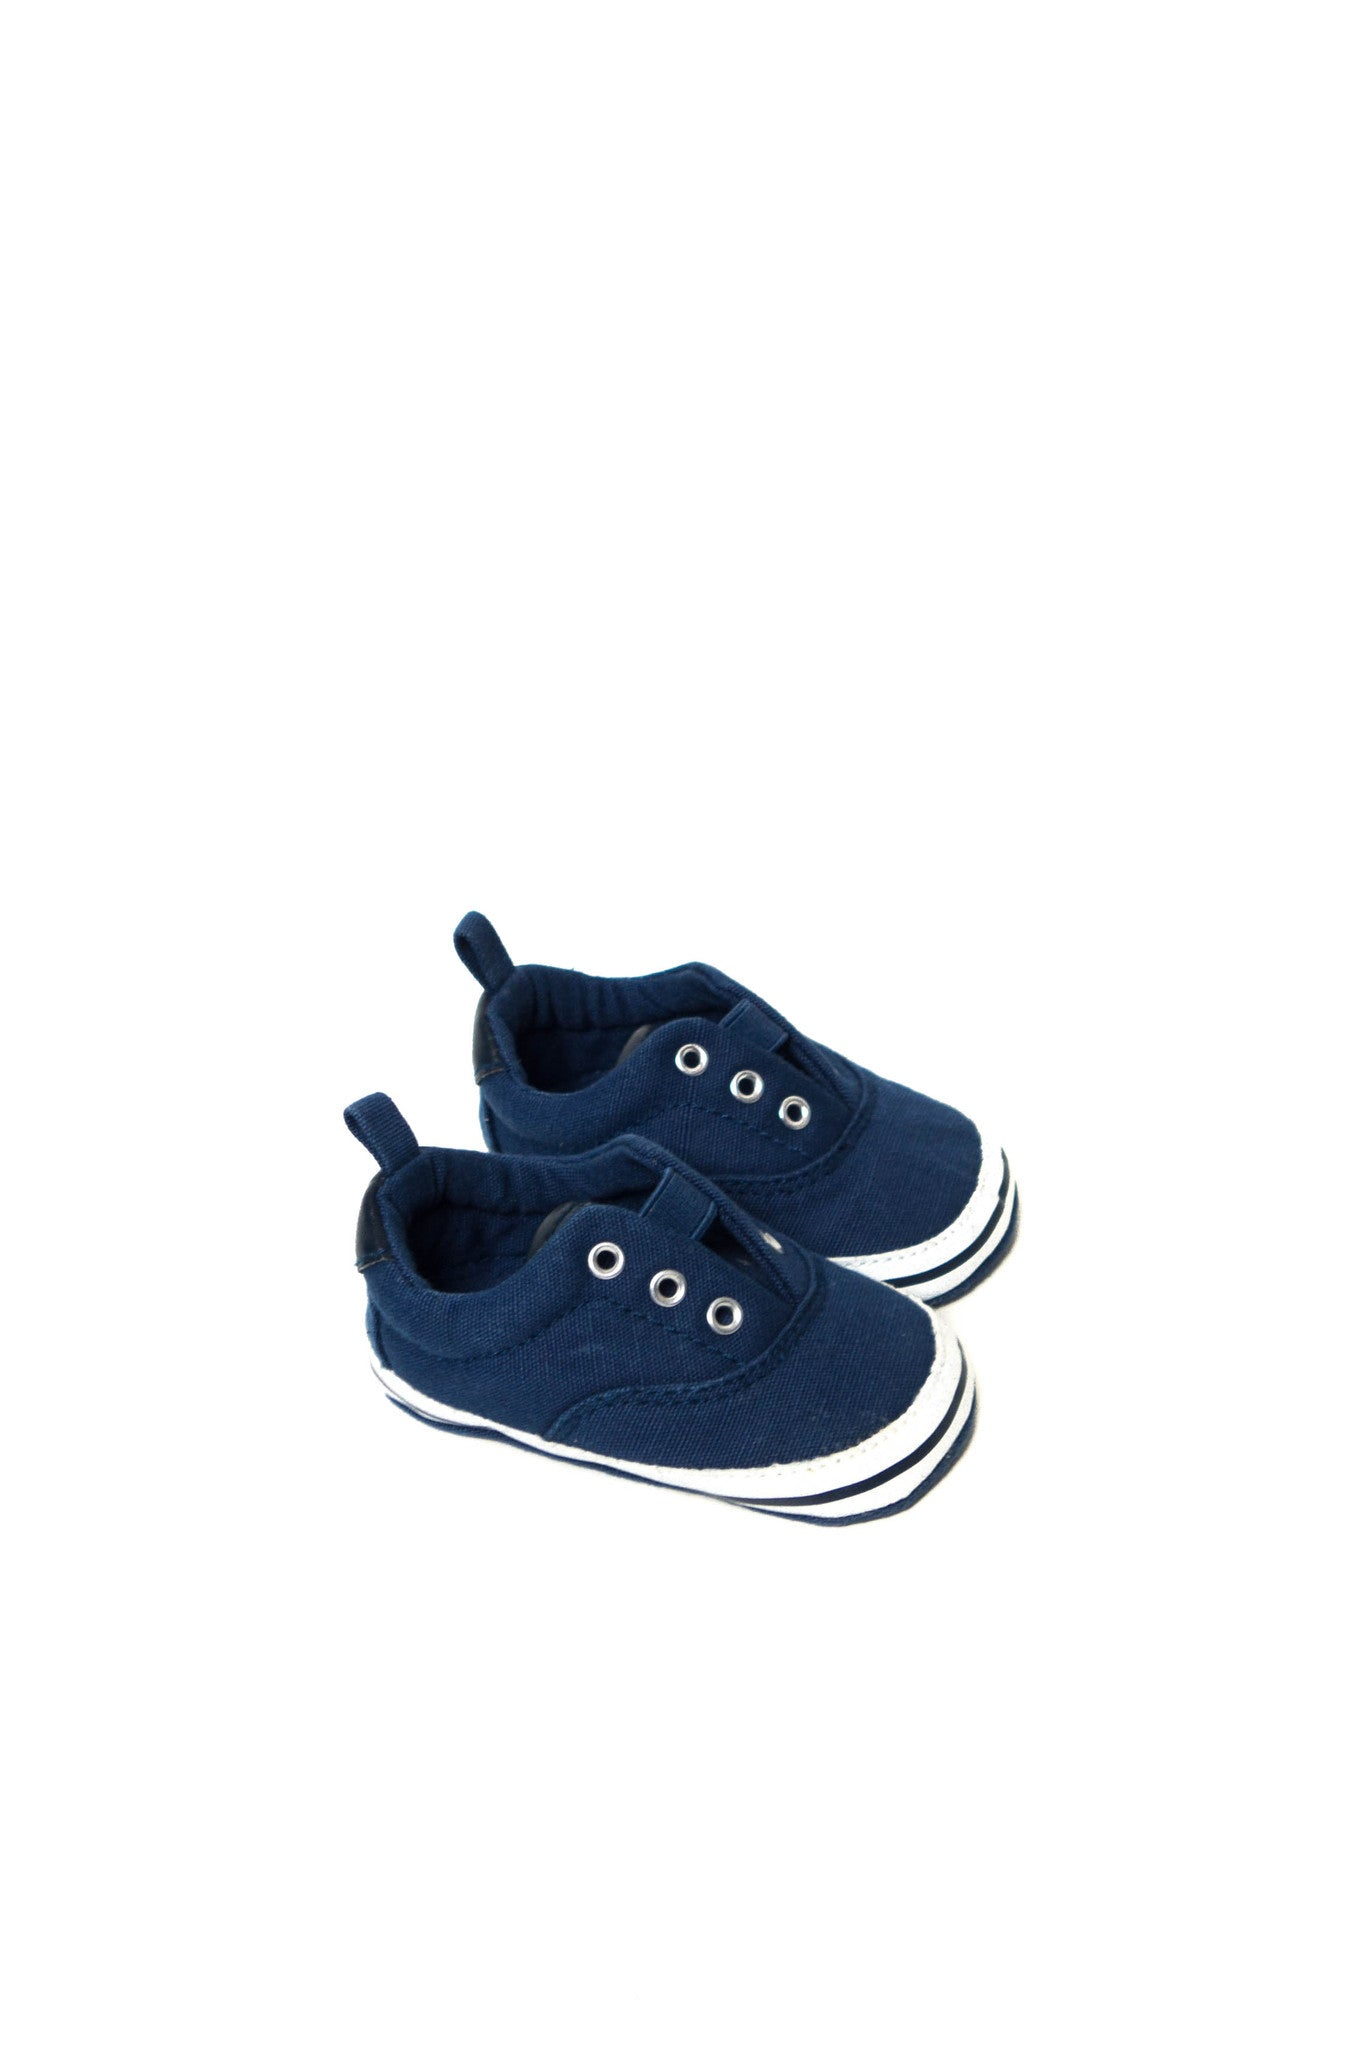 10002519 Seed Baby~Shoes 0-3M at Retykle